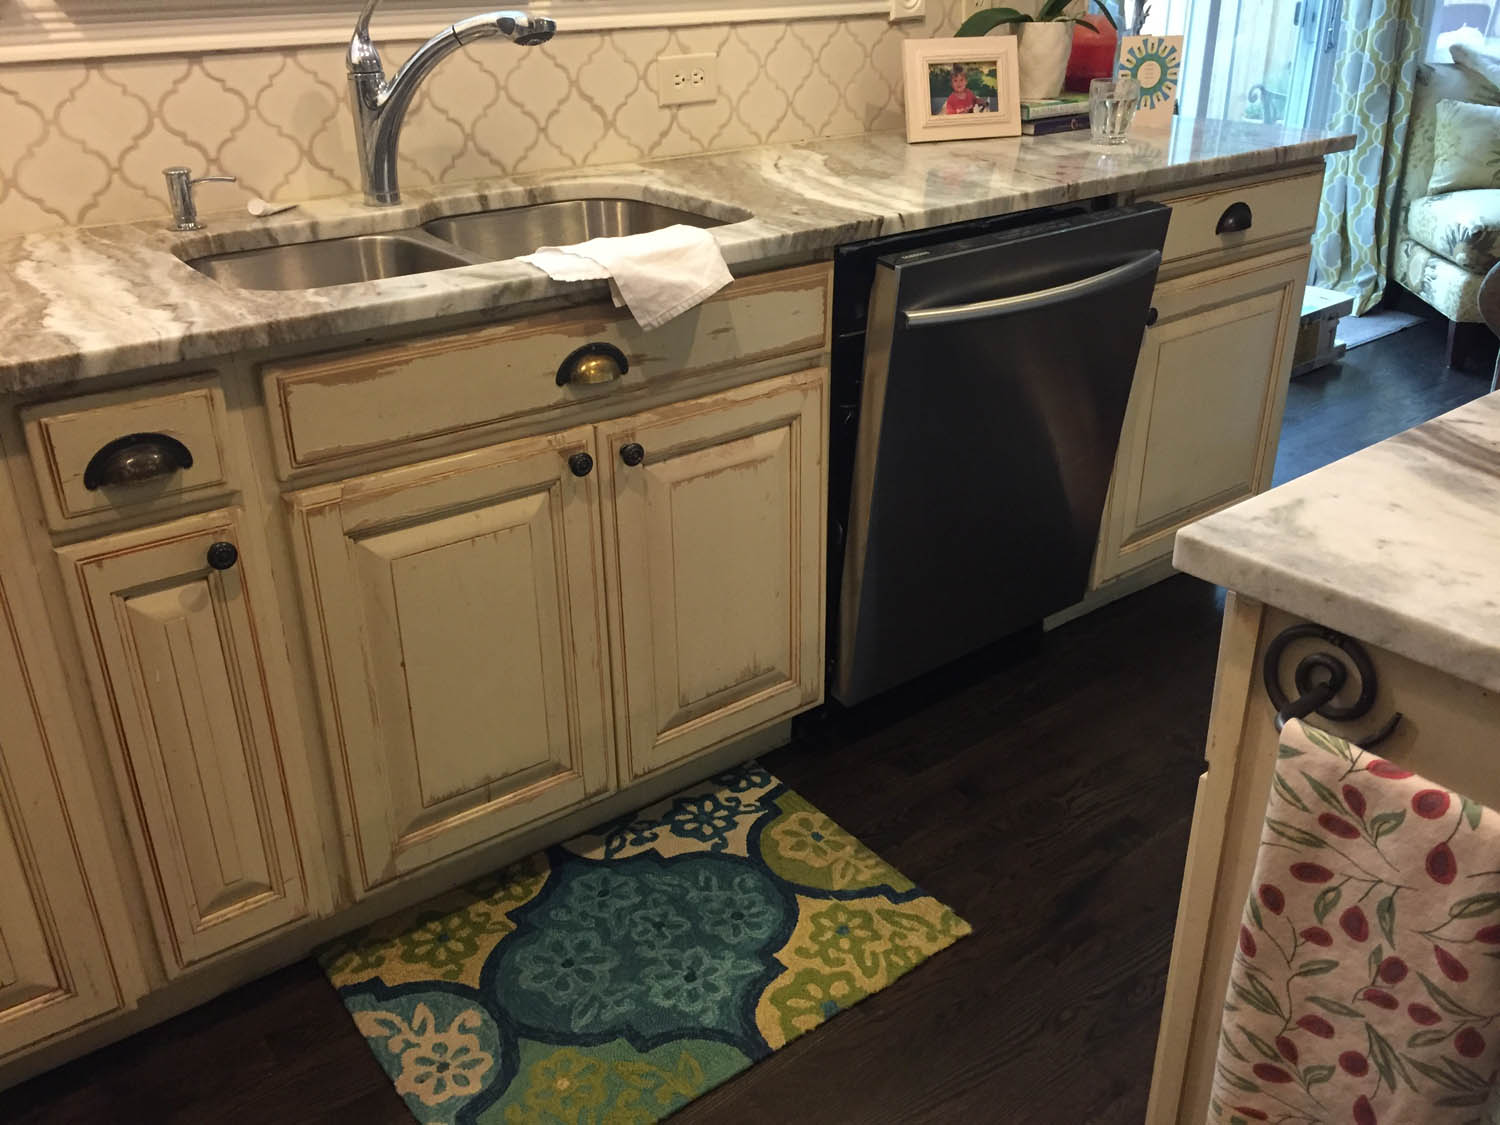 Finished kitchen remodel at Curtice Cottage.